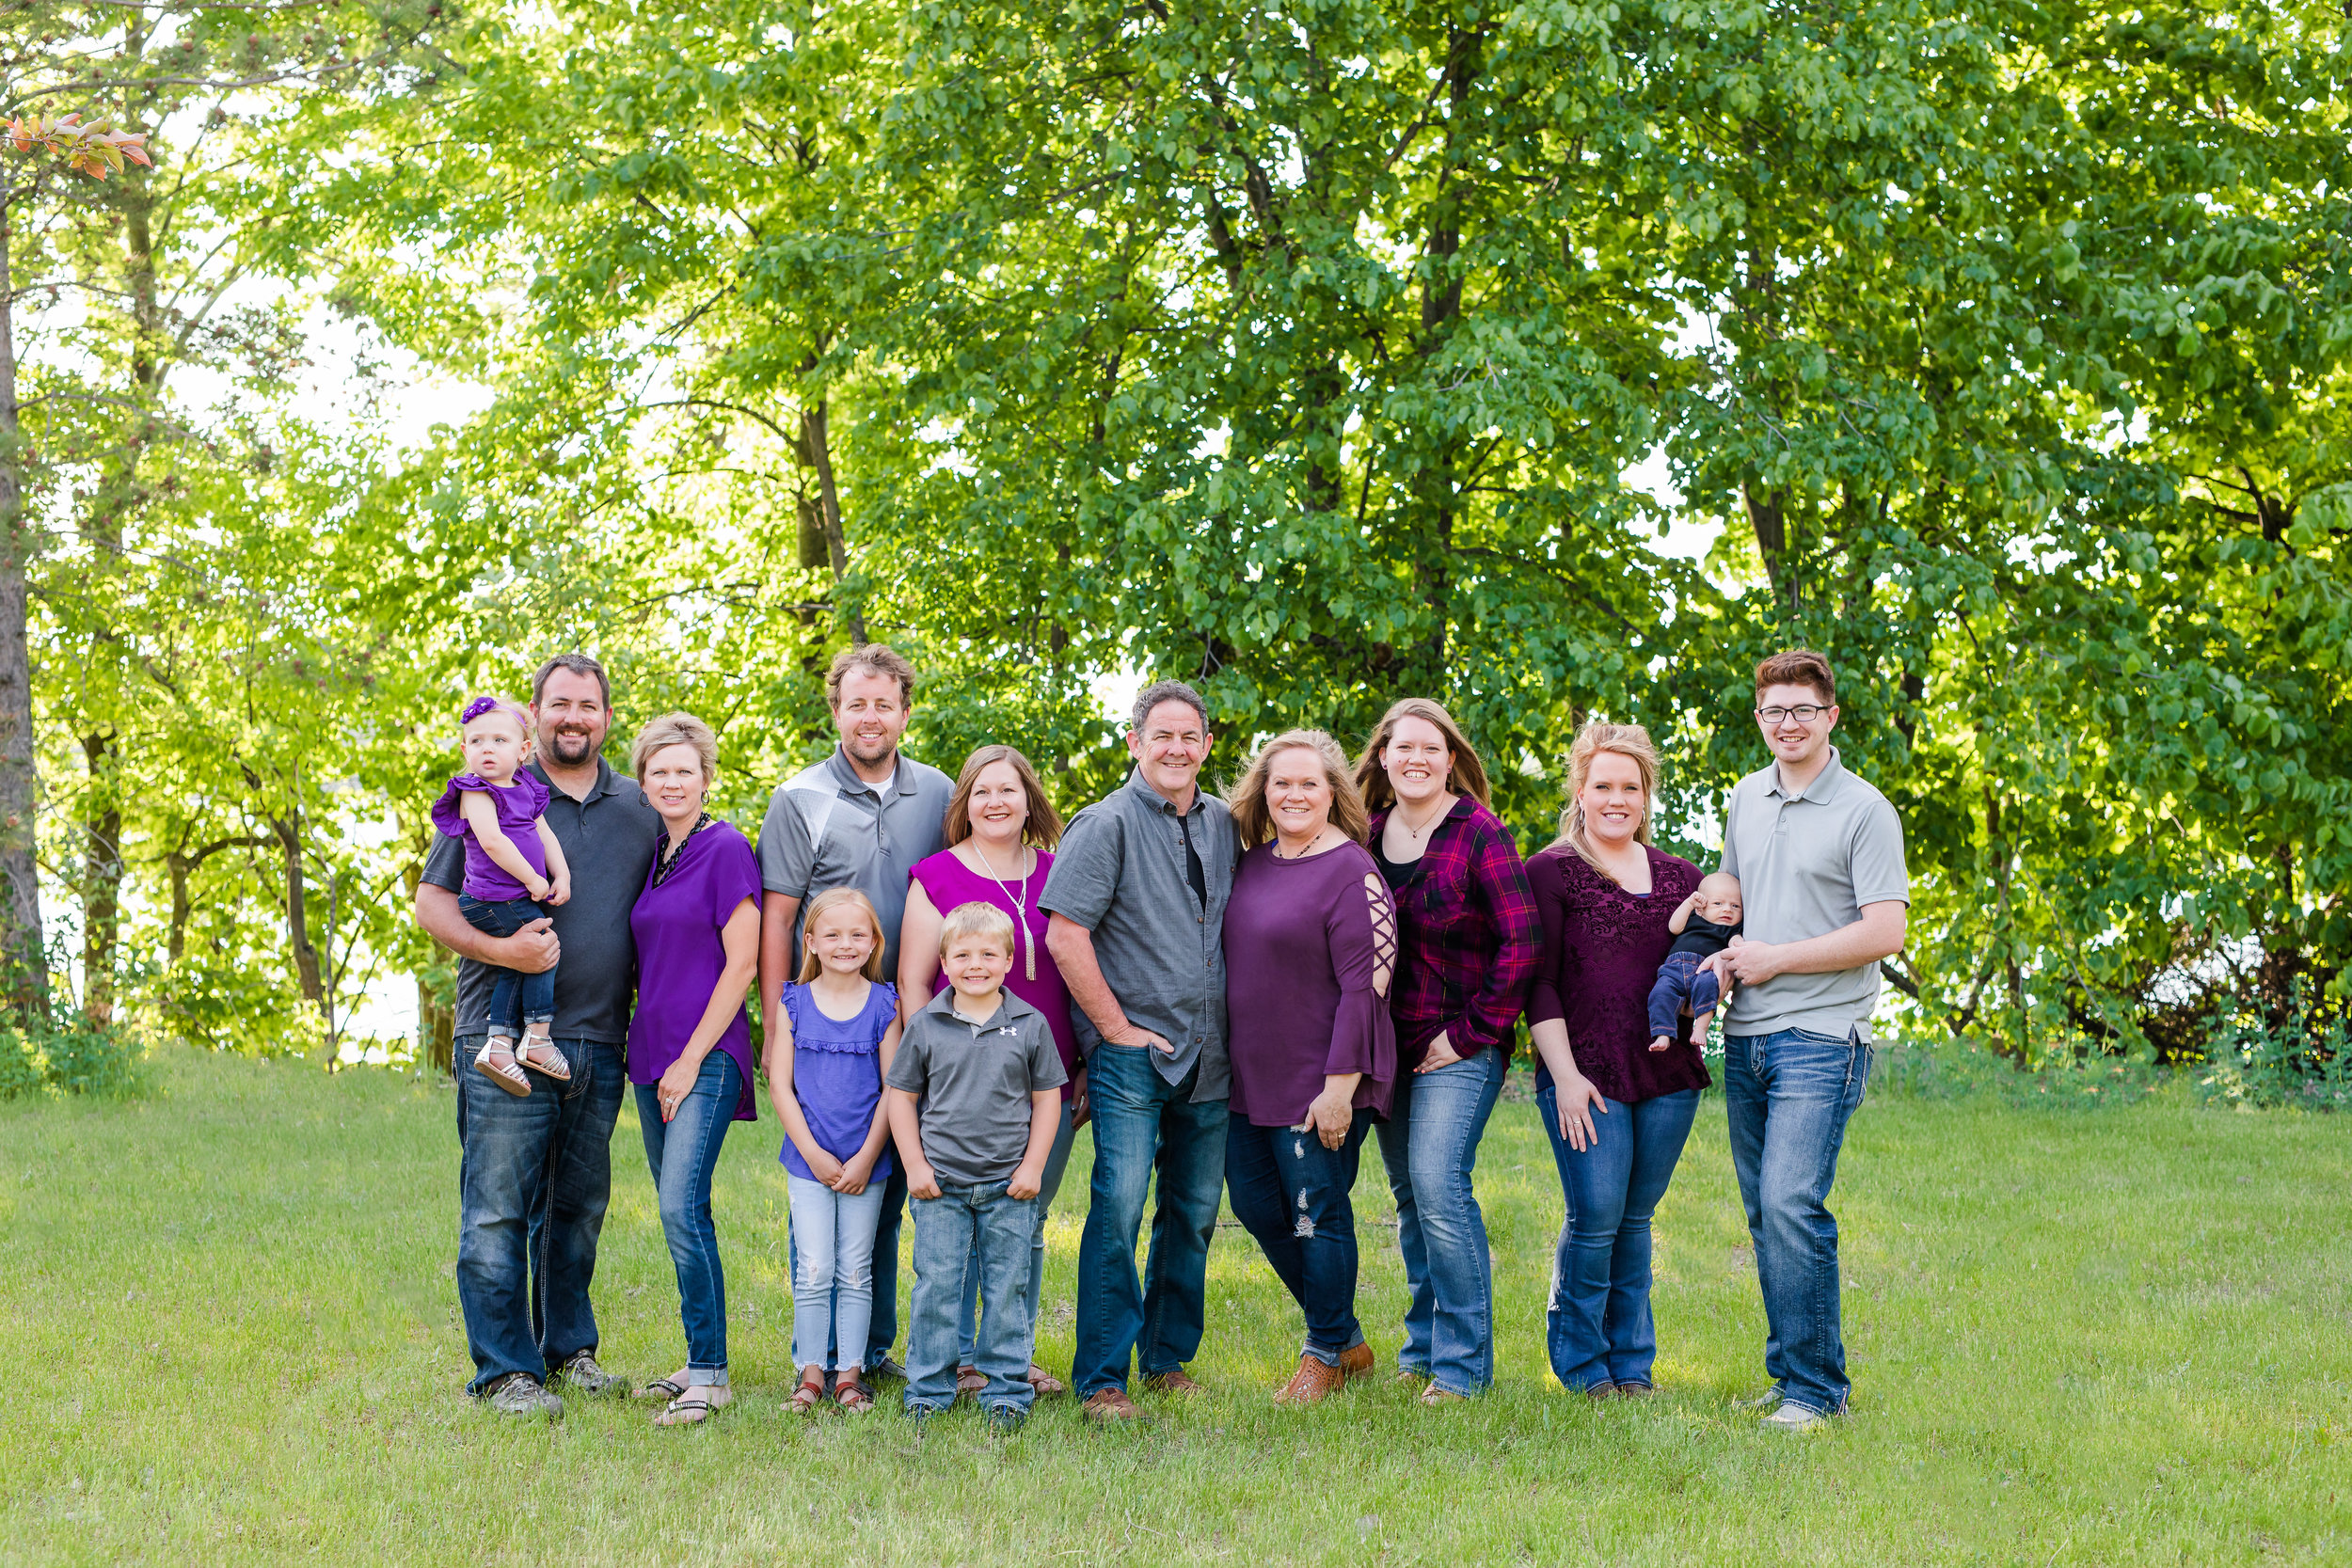 Extended Family Session - Includes appx 1 hour of photography timePerfect for multiple groupings with your extended family40+ digital images with print release$525